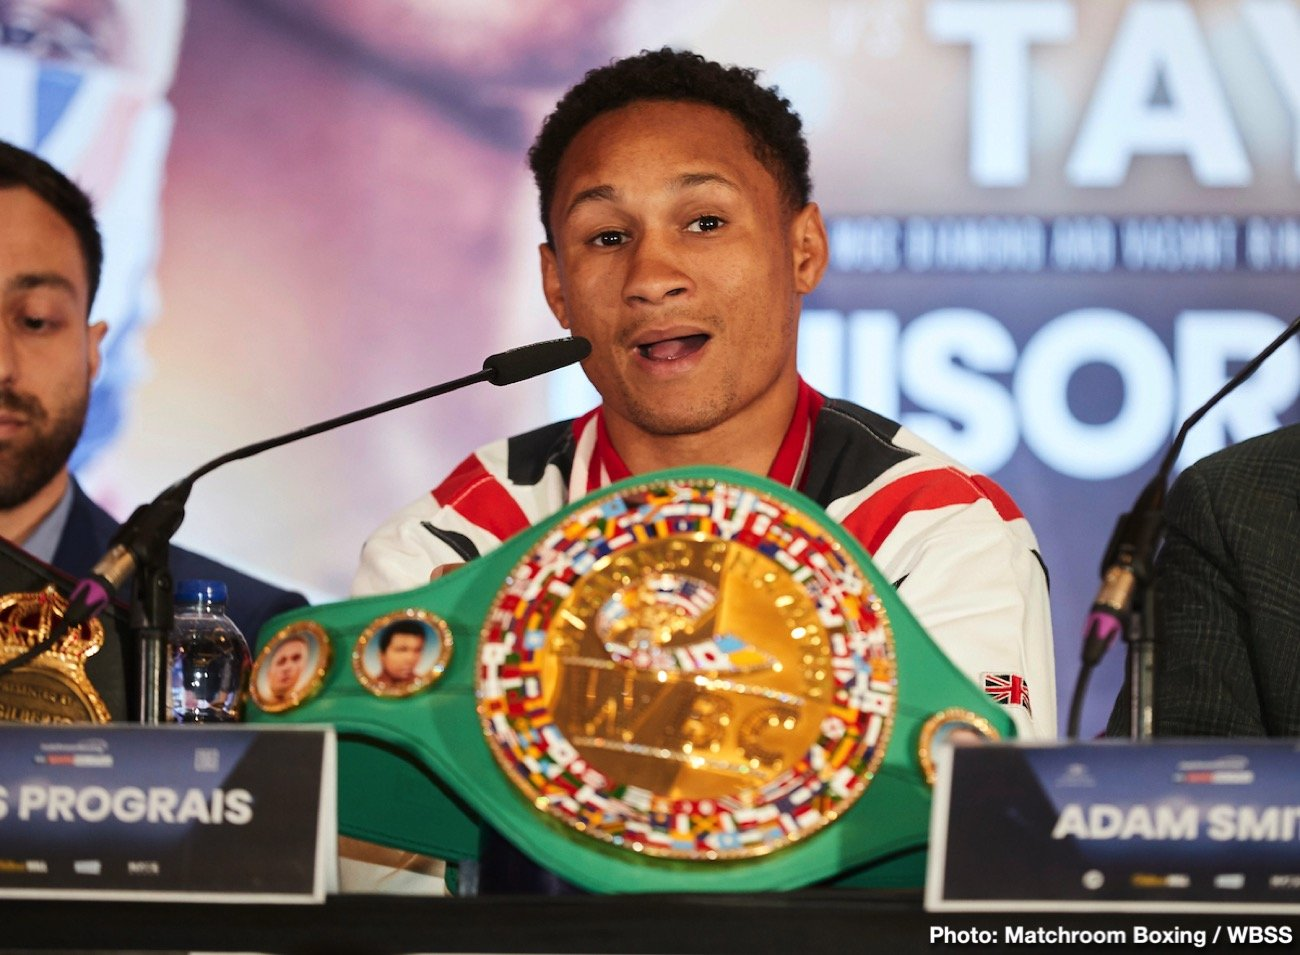 Prograis said what separated IBF welterweight champion Spence (26-0, 21 KOs) and WBC champ Porter (30-3-1, 17 KOs) was the 11th round knockdown that Errol scored.